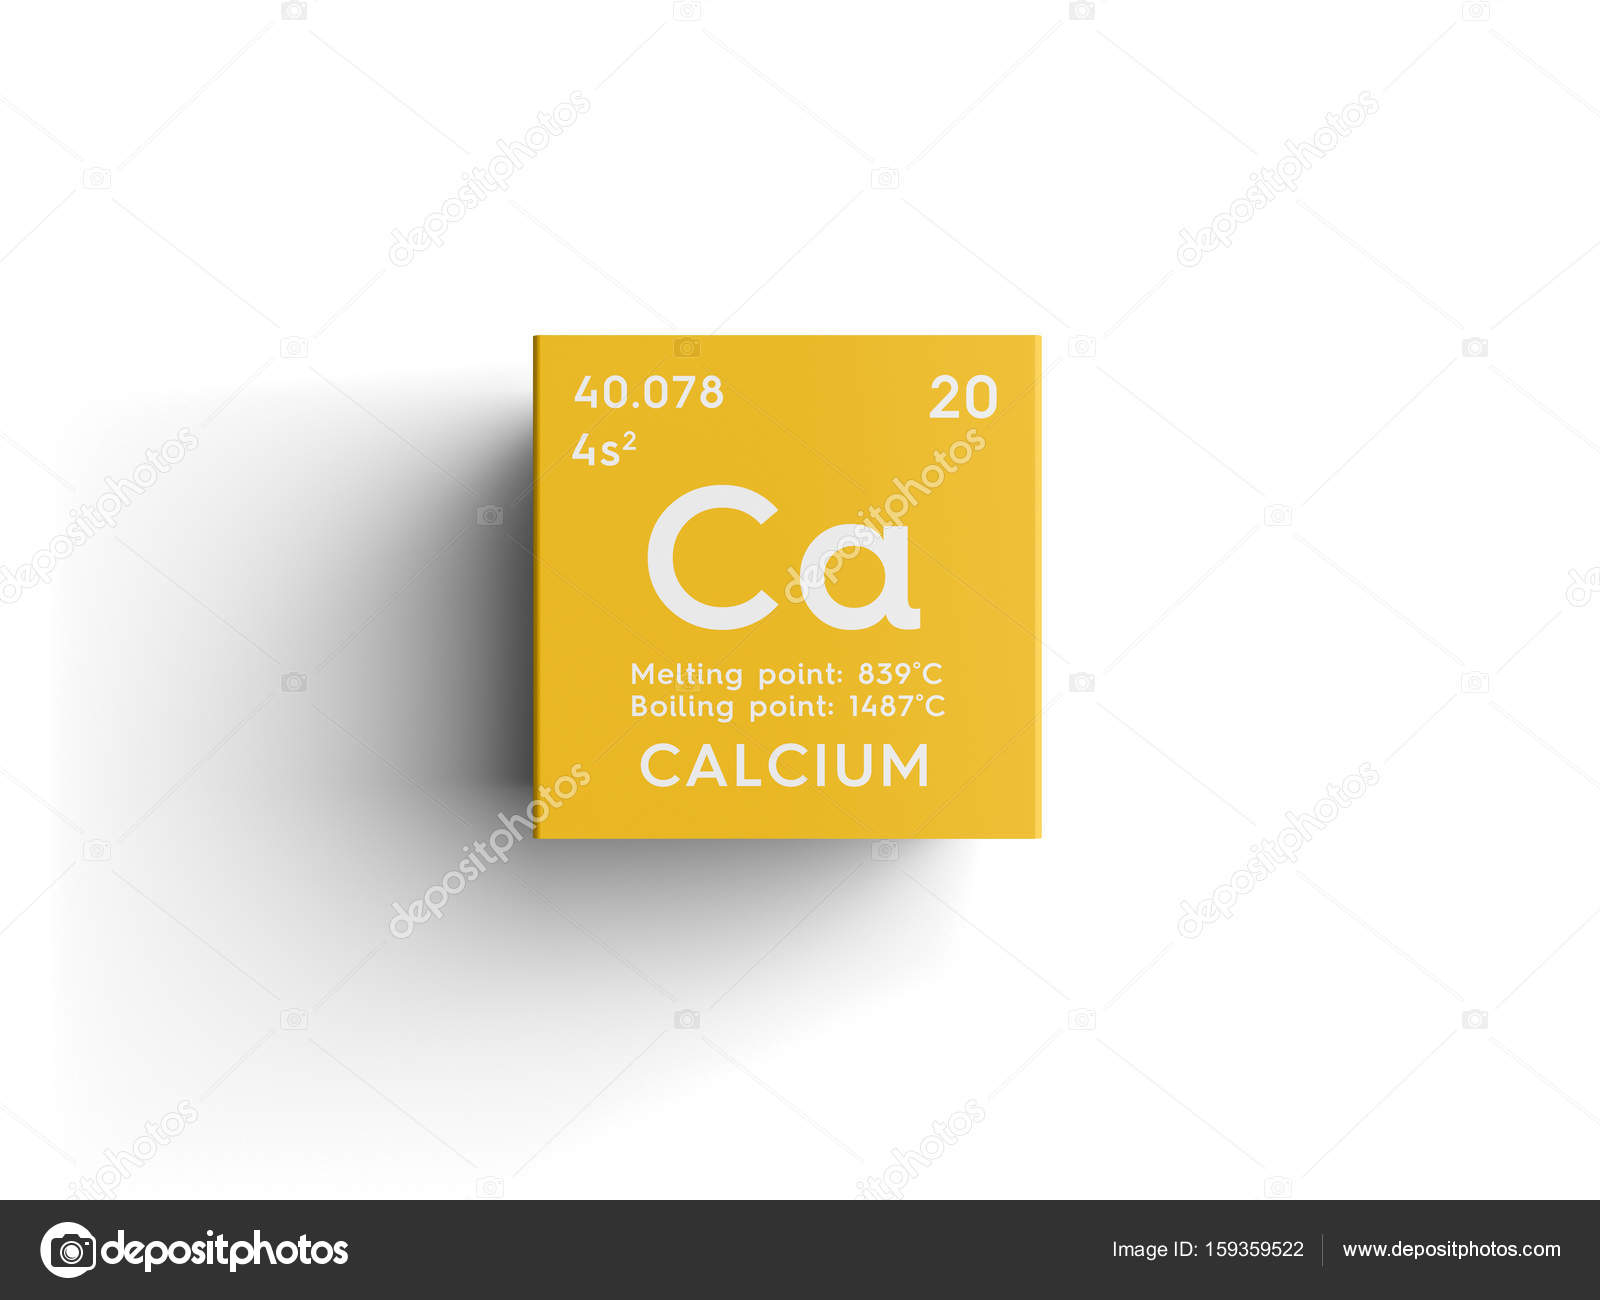 Calcium alkaline earth metals chemical element of mendeleevs alkaline earth metals chemical element of mendeleevs periodic table calcium in square cube creative concept photo by sanches812 urtaz Images